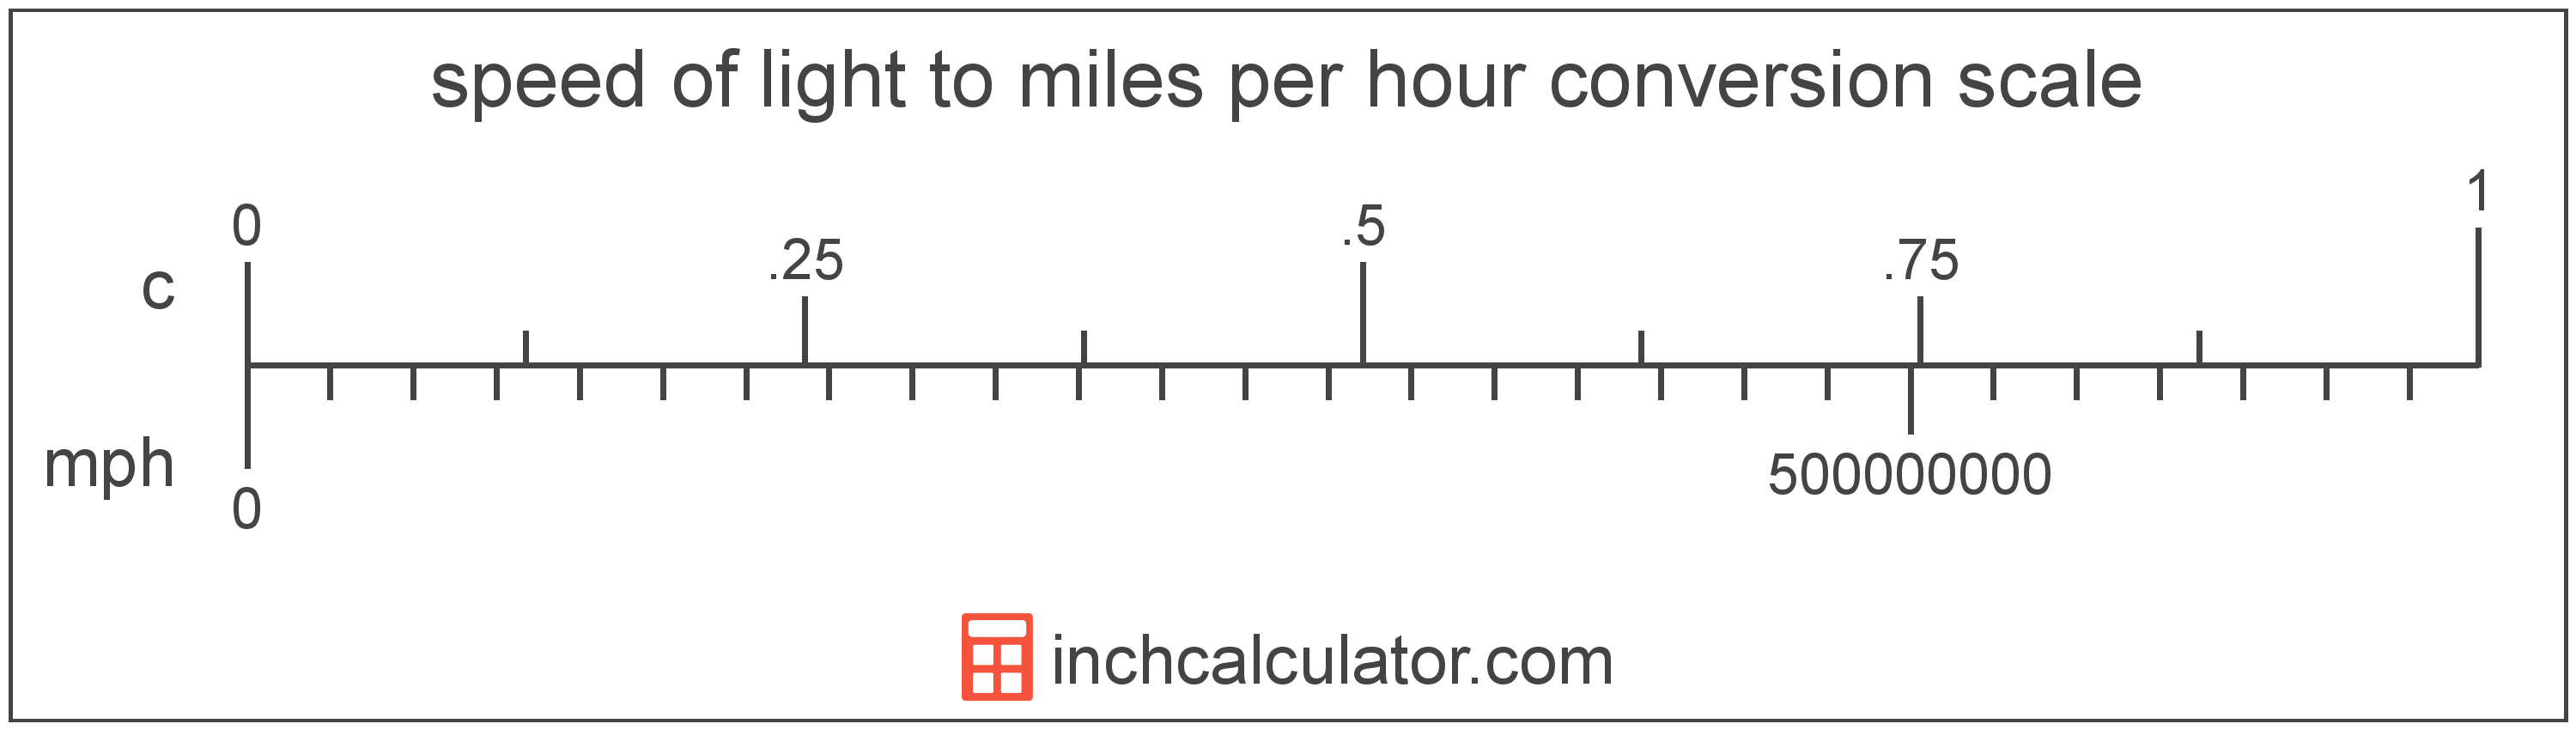 conversion scale showing miles per hour and equivalent speed of light speed values